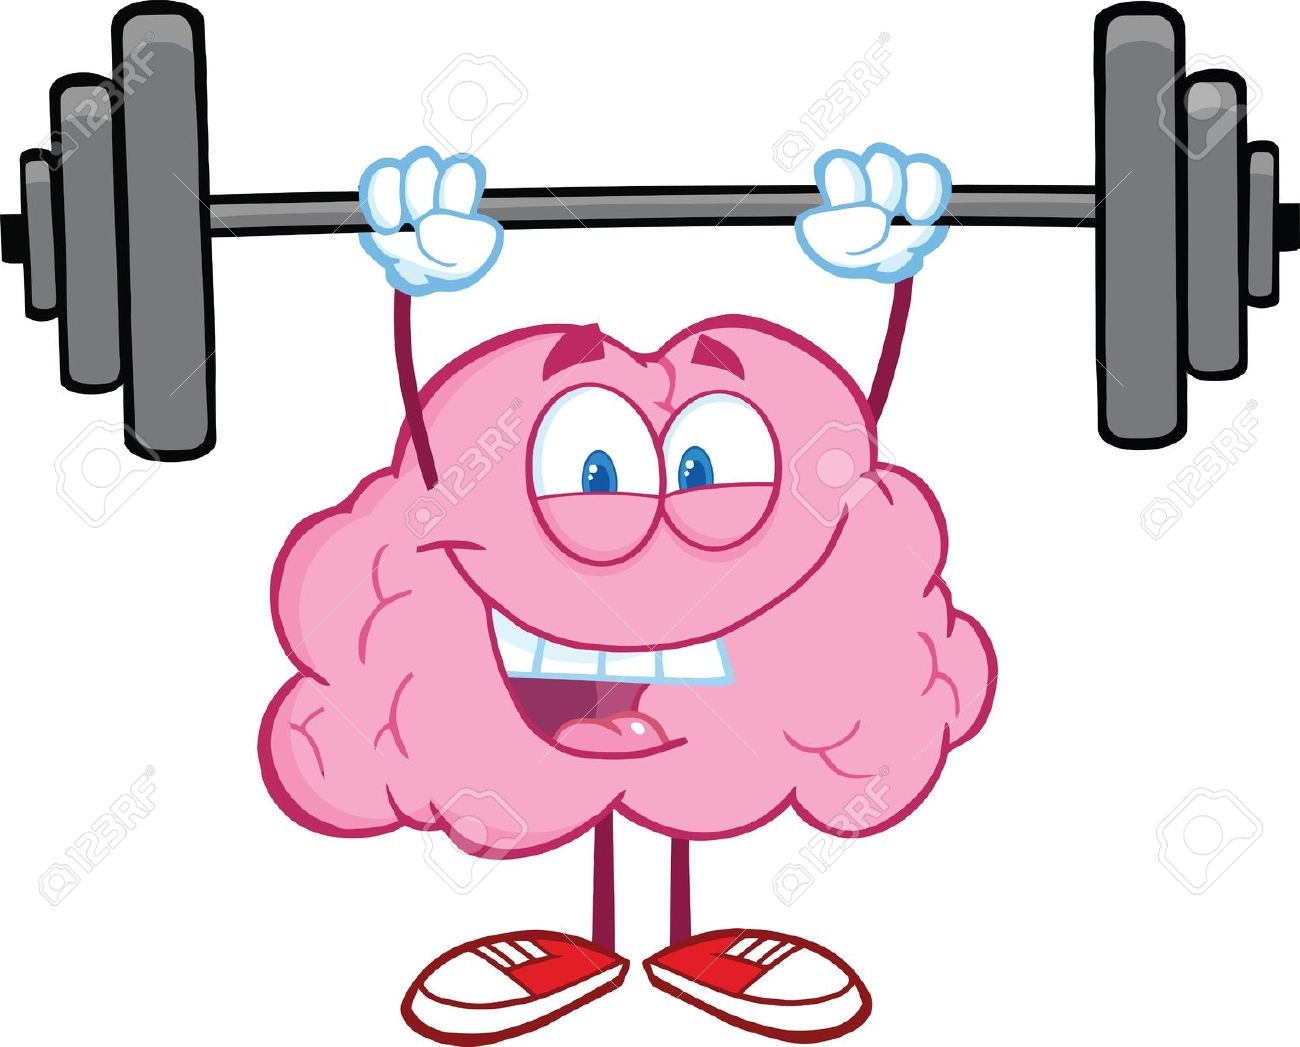 Brains clipart excercise #1